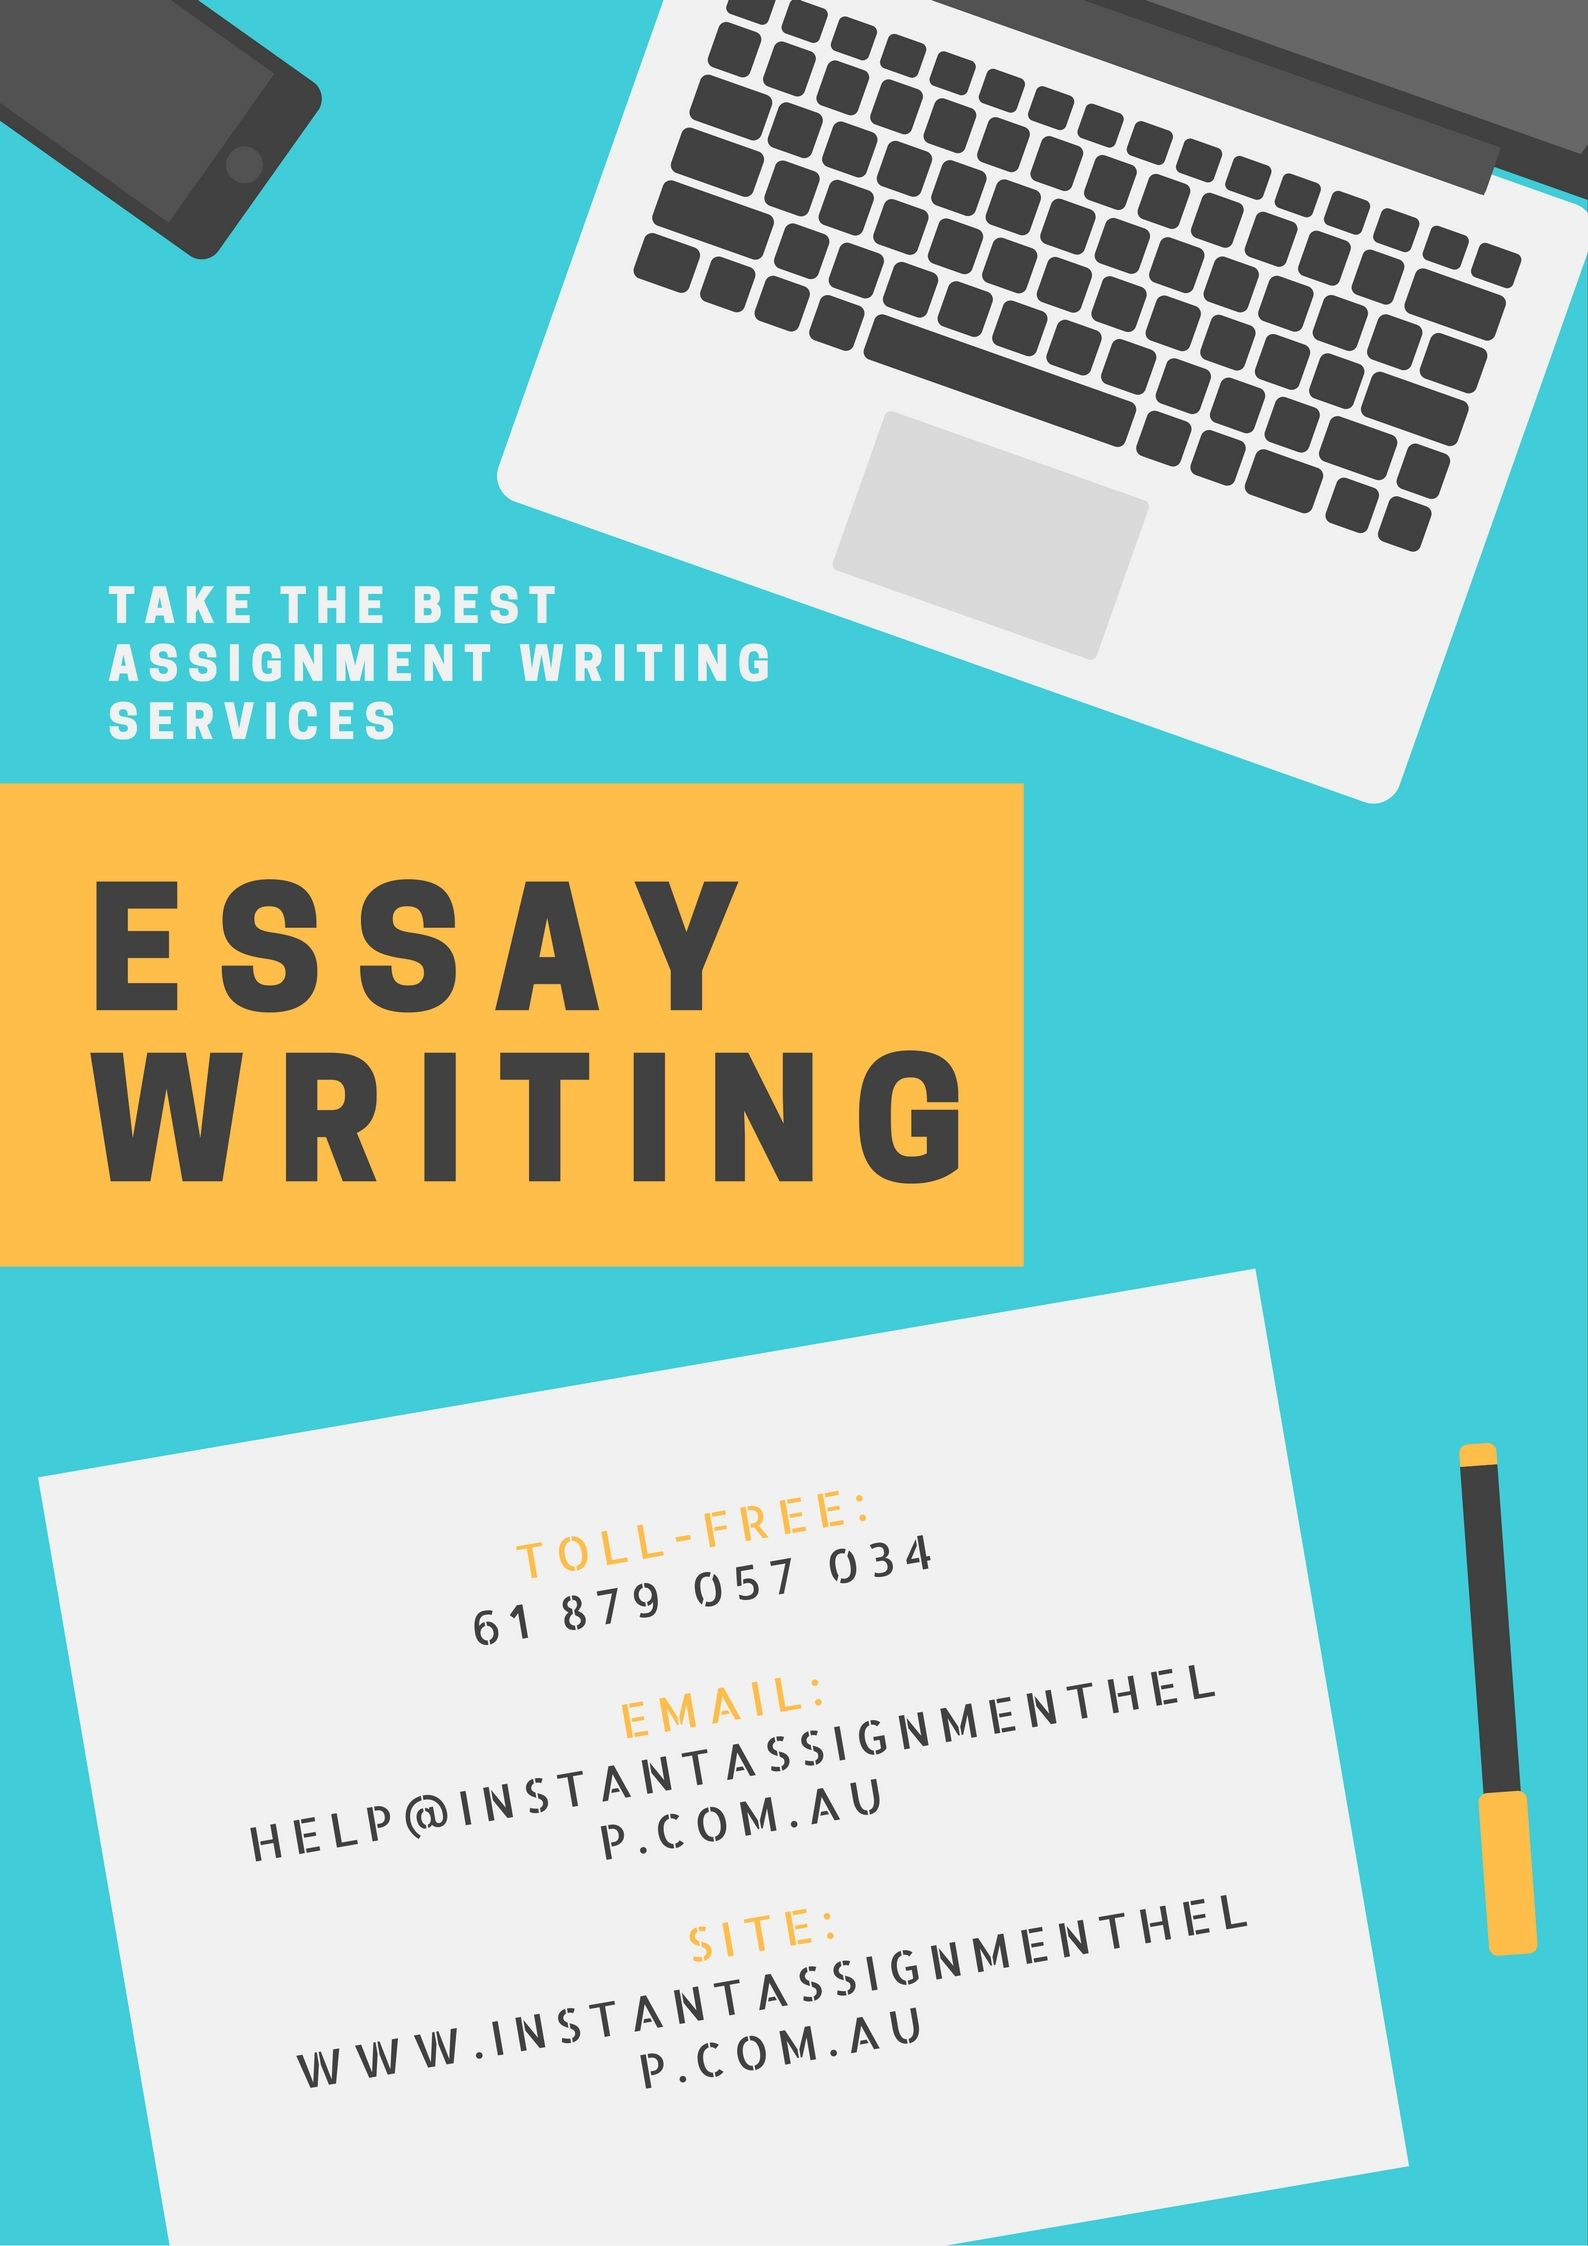 English Essays Topics We At Instant Assignment Help Australia Provides Quality Essay Writing  Service As Per University Module Our Online Experts Are X For Providing   Persuasive Essay Examples High School also Obesity Essay Thesis Essay Writing Help  Essay Subjects  Essay Writing Writing  High School Scholarship Essay Examples